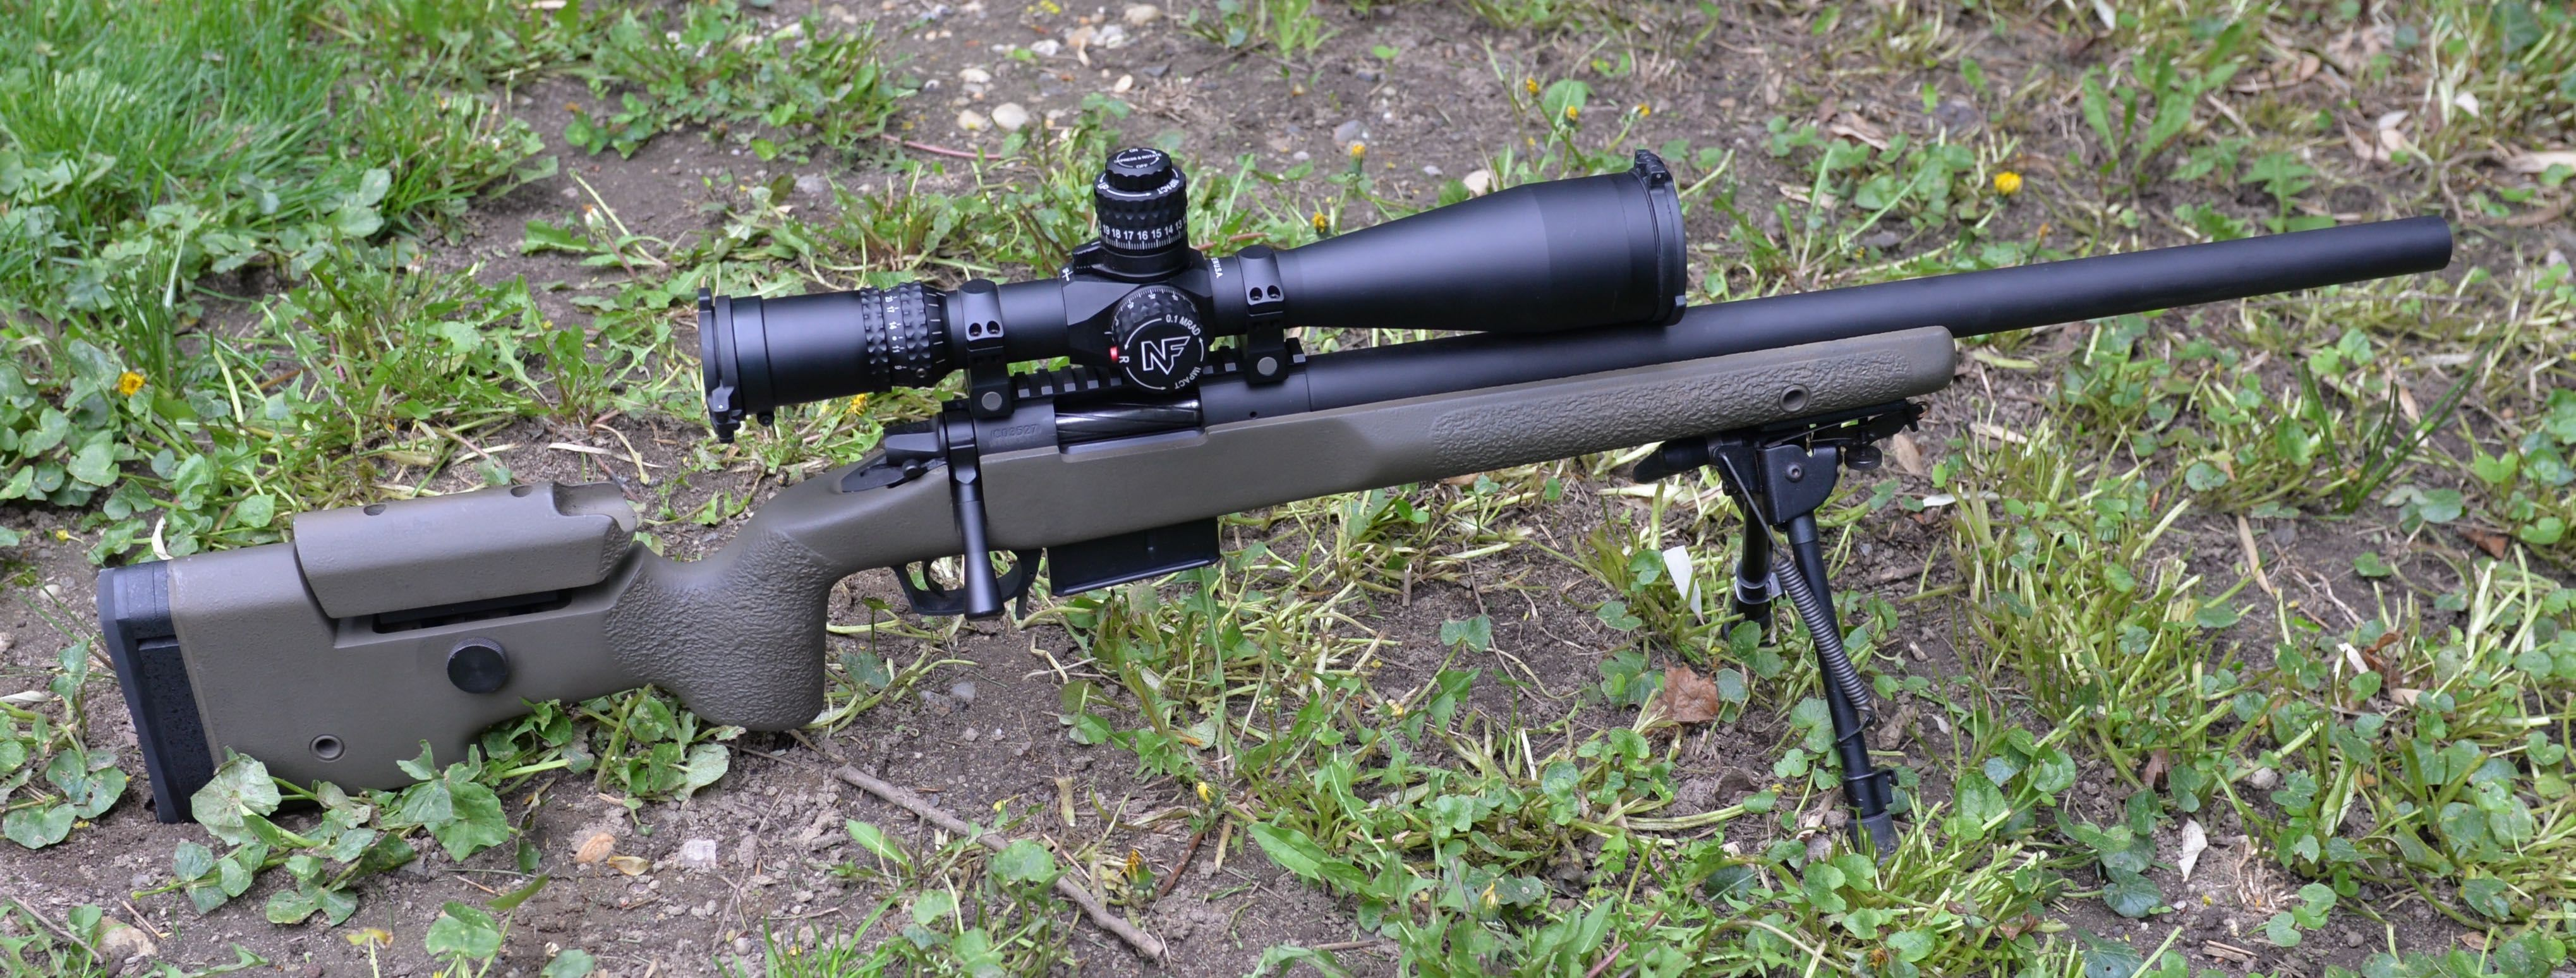 best scope for ruger precision rifle for money